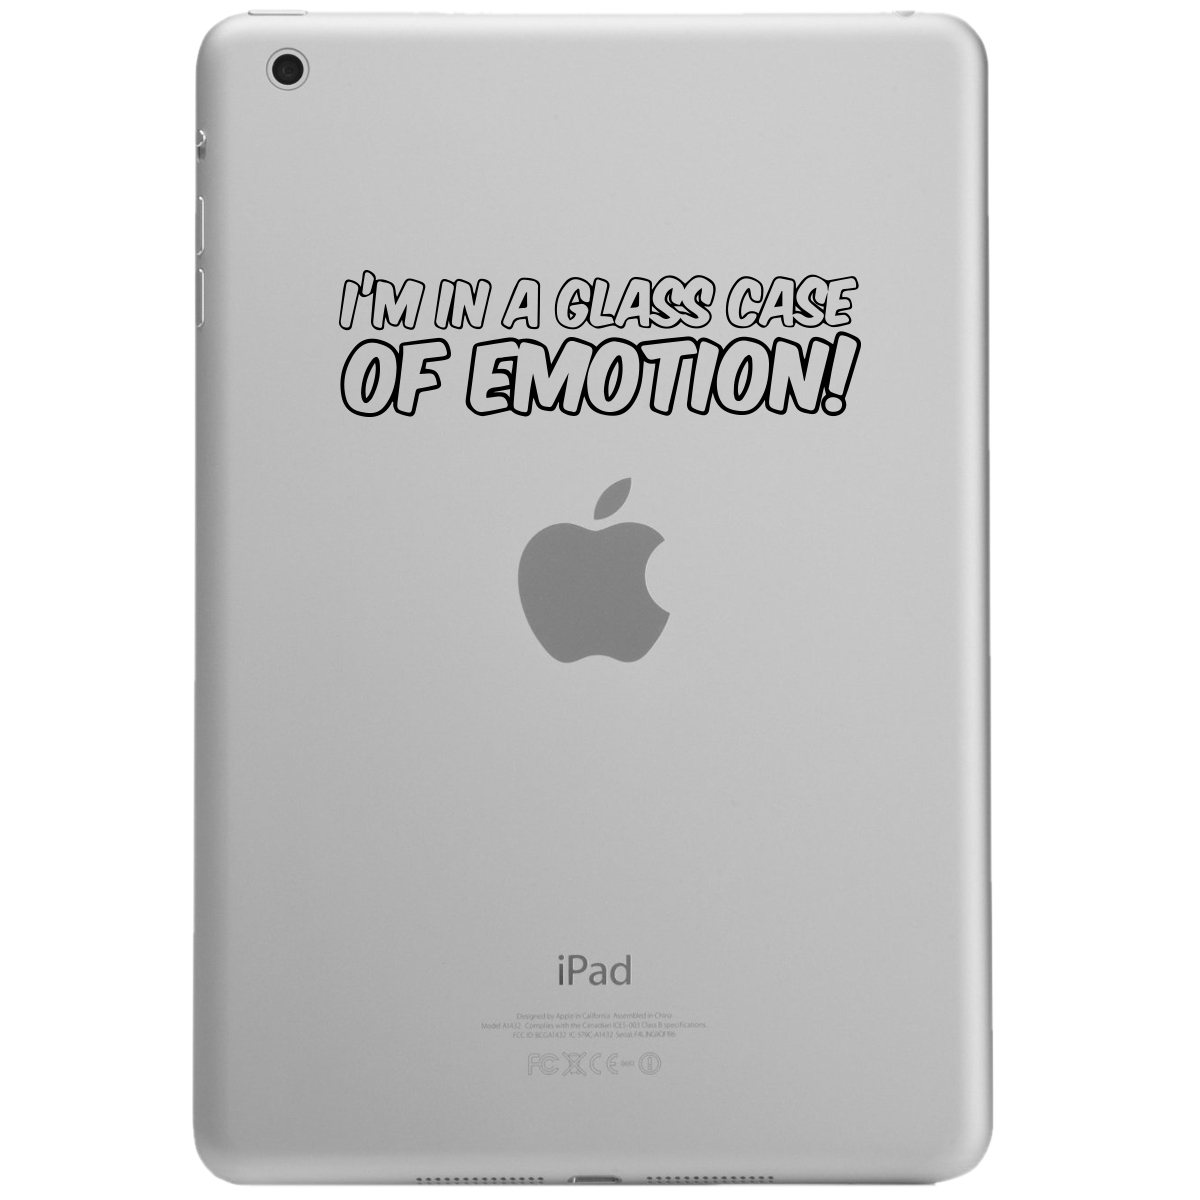 Funny Ron Burgundy Quote I'm in a Glass Case of Emotion iPad Tablet Vinyl Sticker Decal